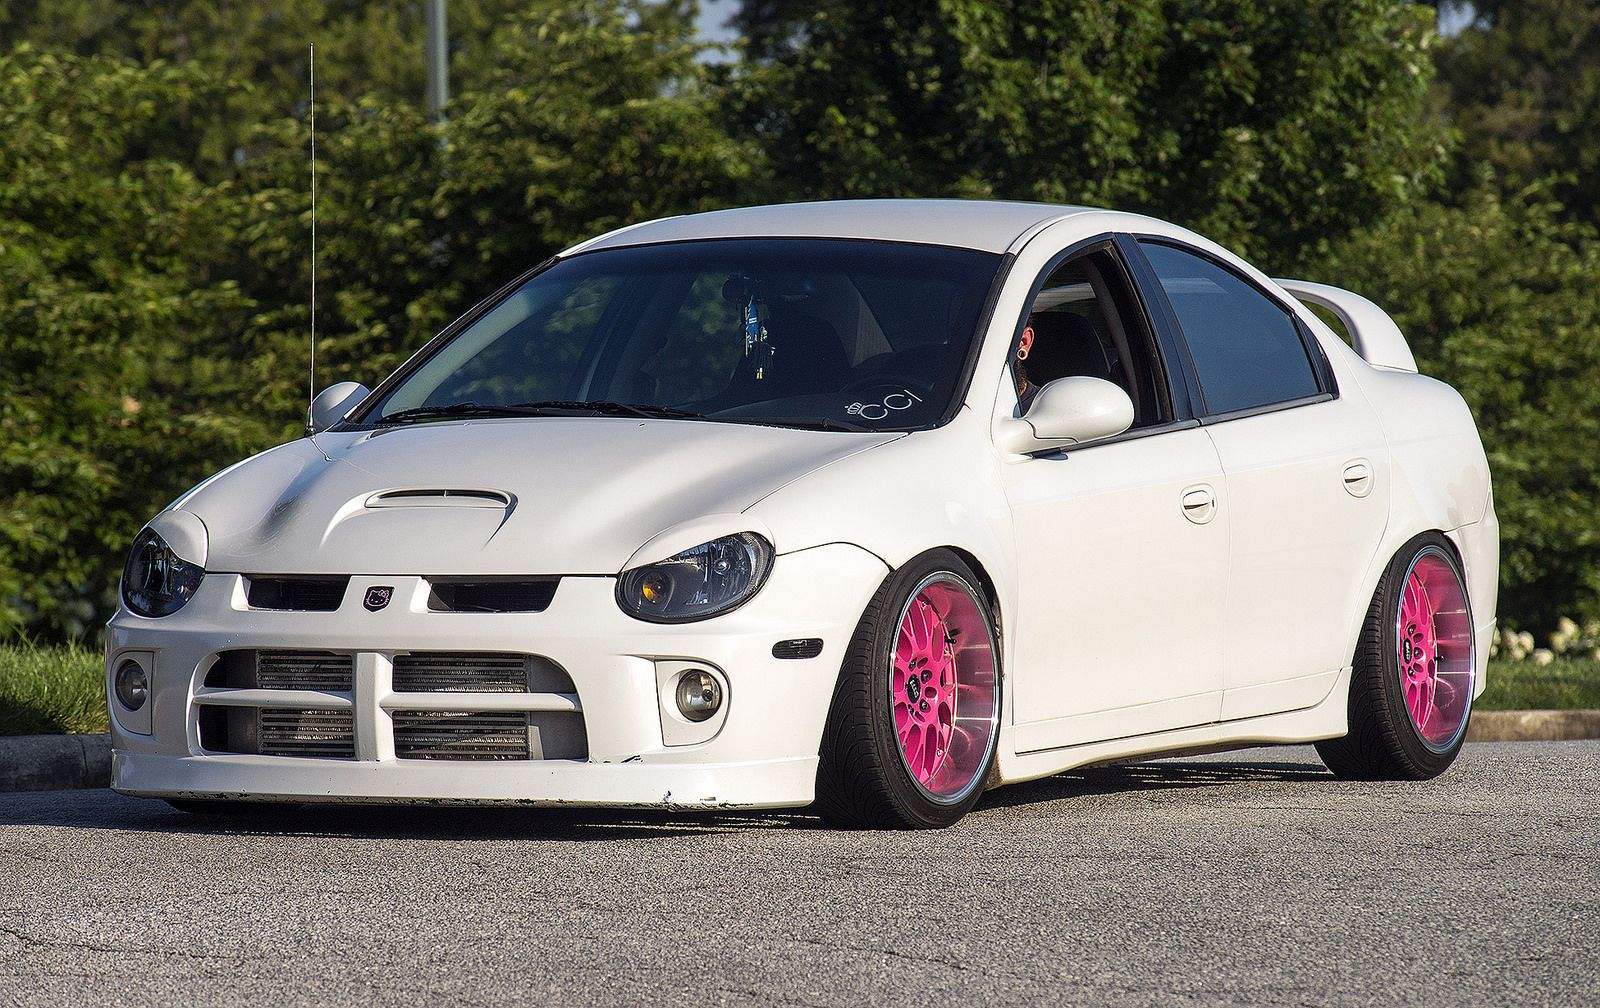 Dodge Neon Tuning 2 Tuning Srt4 Pinterest Dodge And Neon